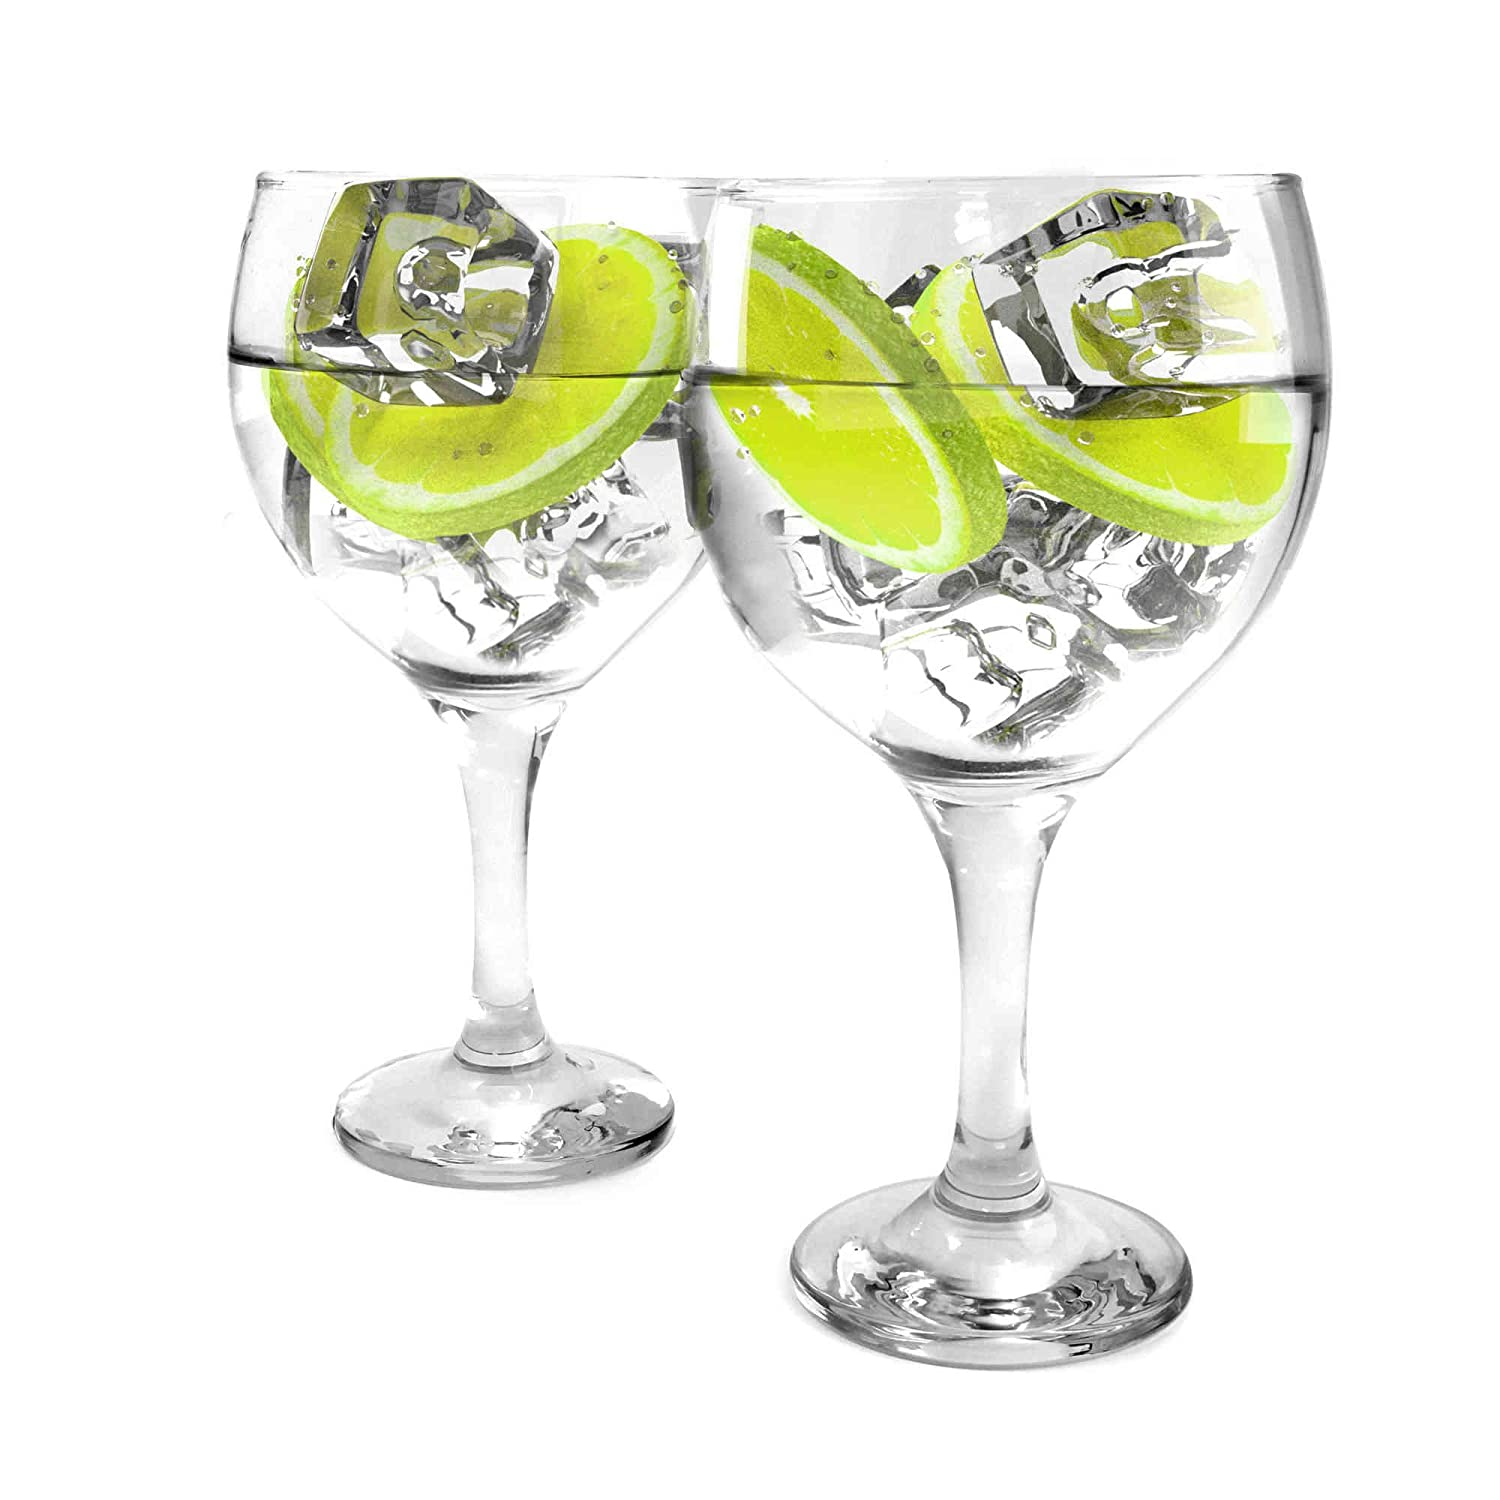 Ginsanity Set of 2 - Personalised/Engraved Classic 22 oz Gin Balloon Glass Celebration/Special Occasion/Toast